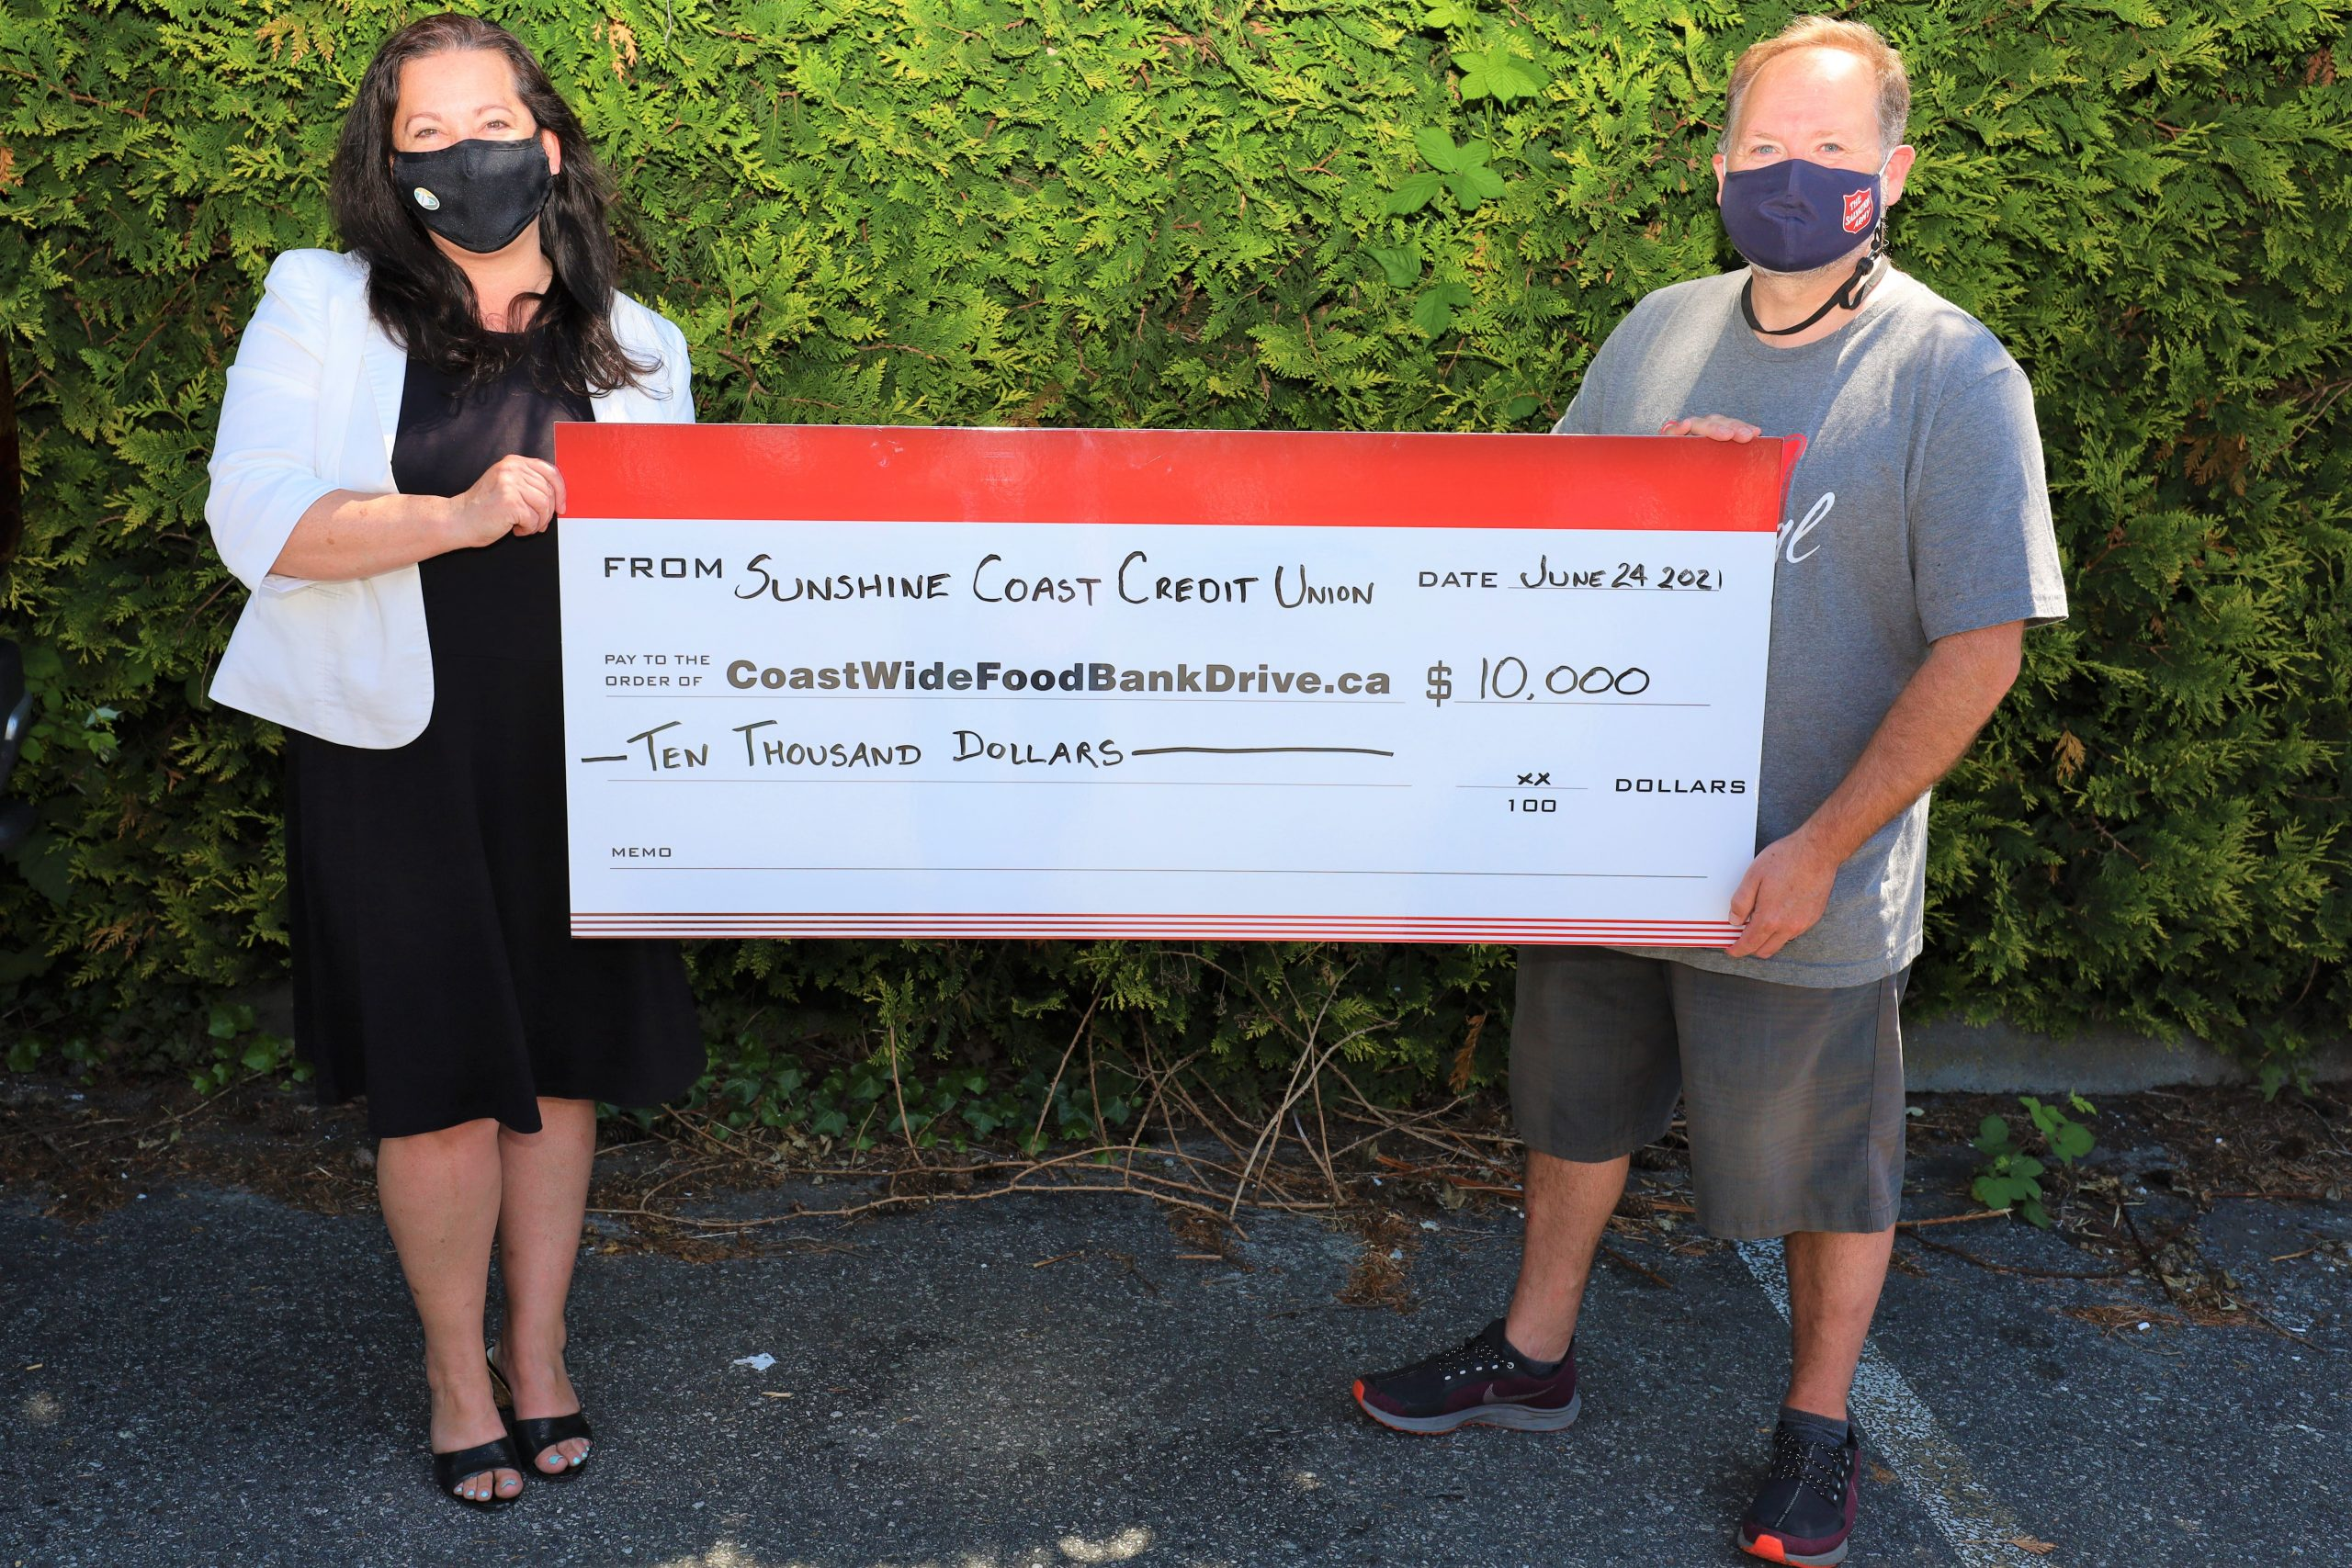 Employees of the Sunshine Coast Credit Union stand with a large cheque